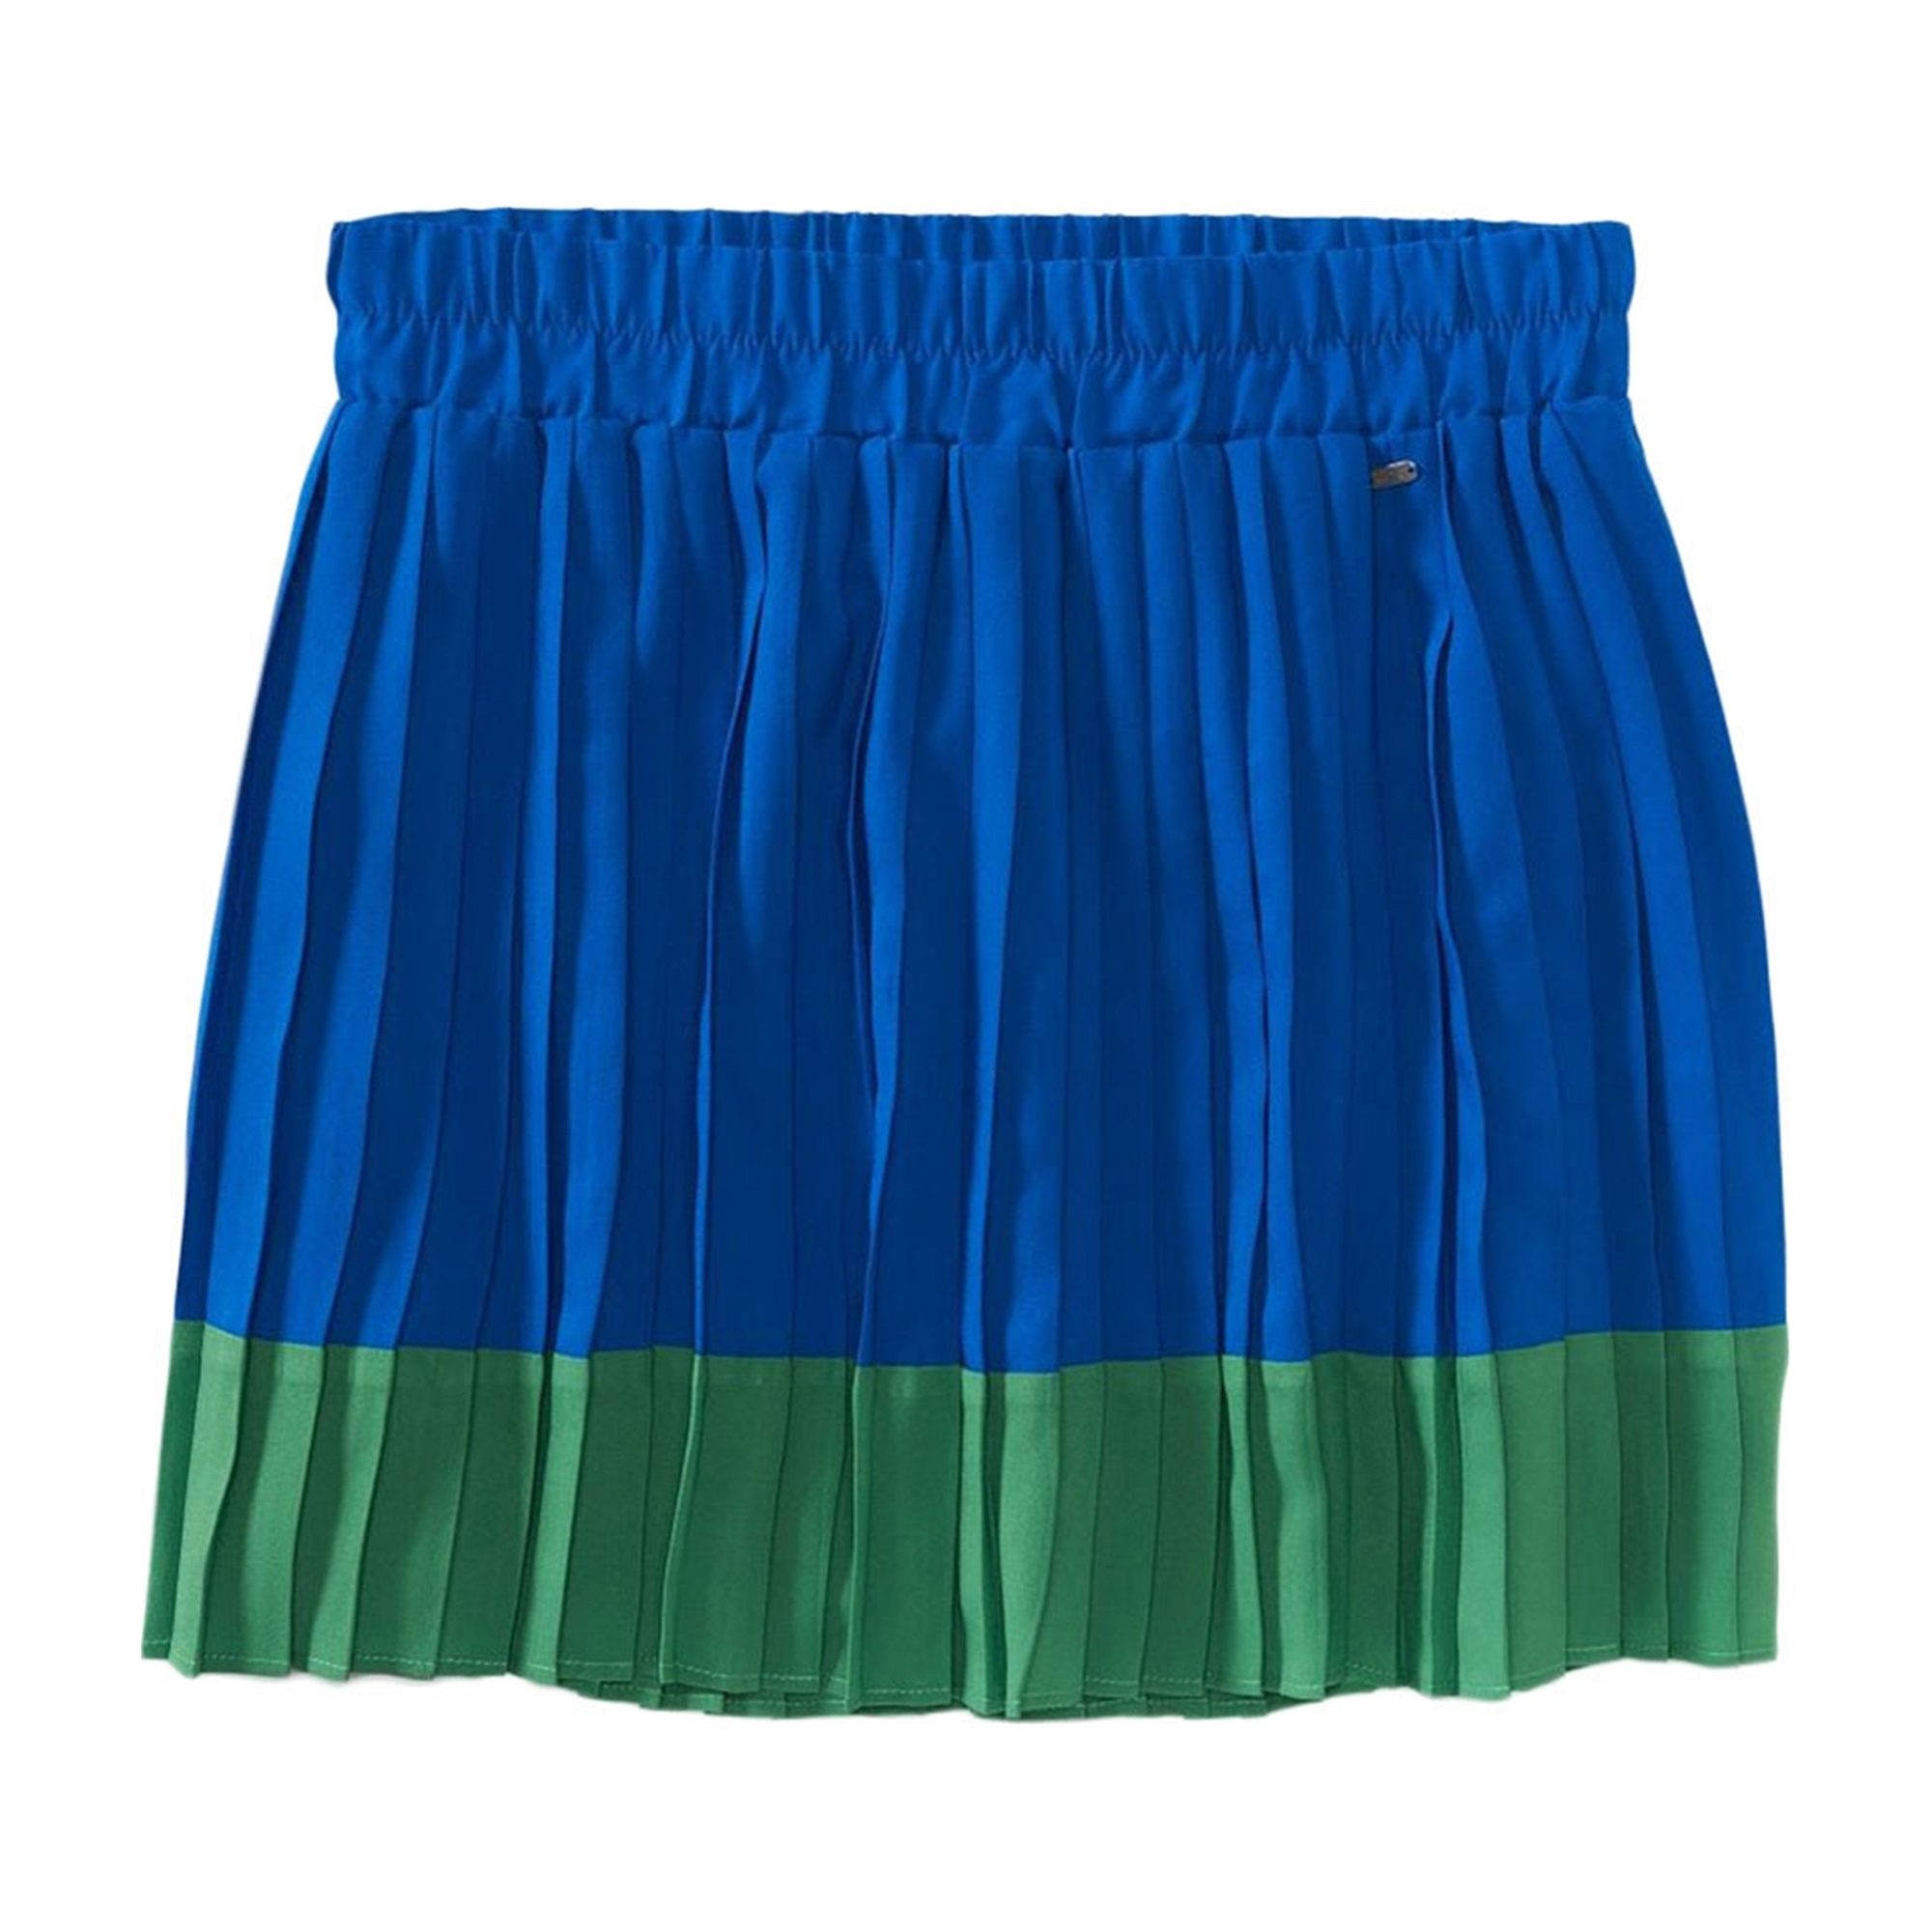 Aeropostale Womens Wowoone Pleated Mini Skirt